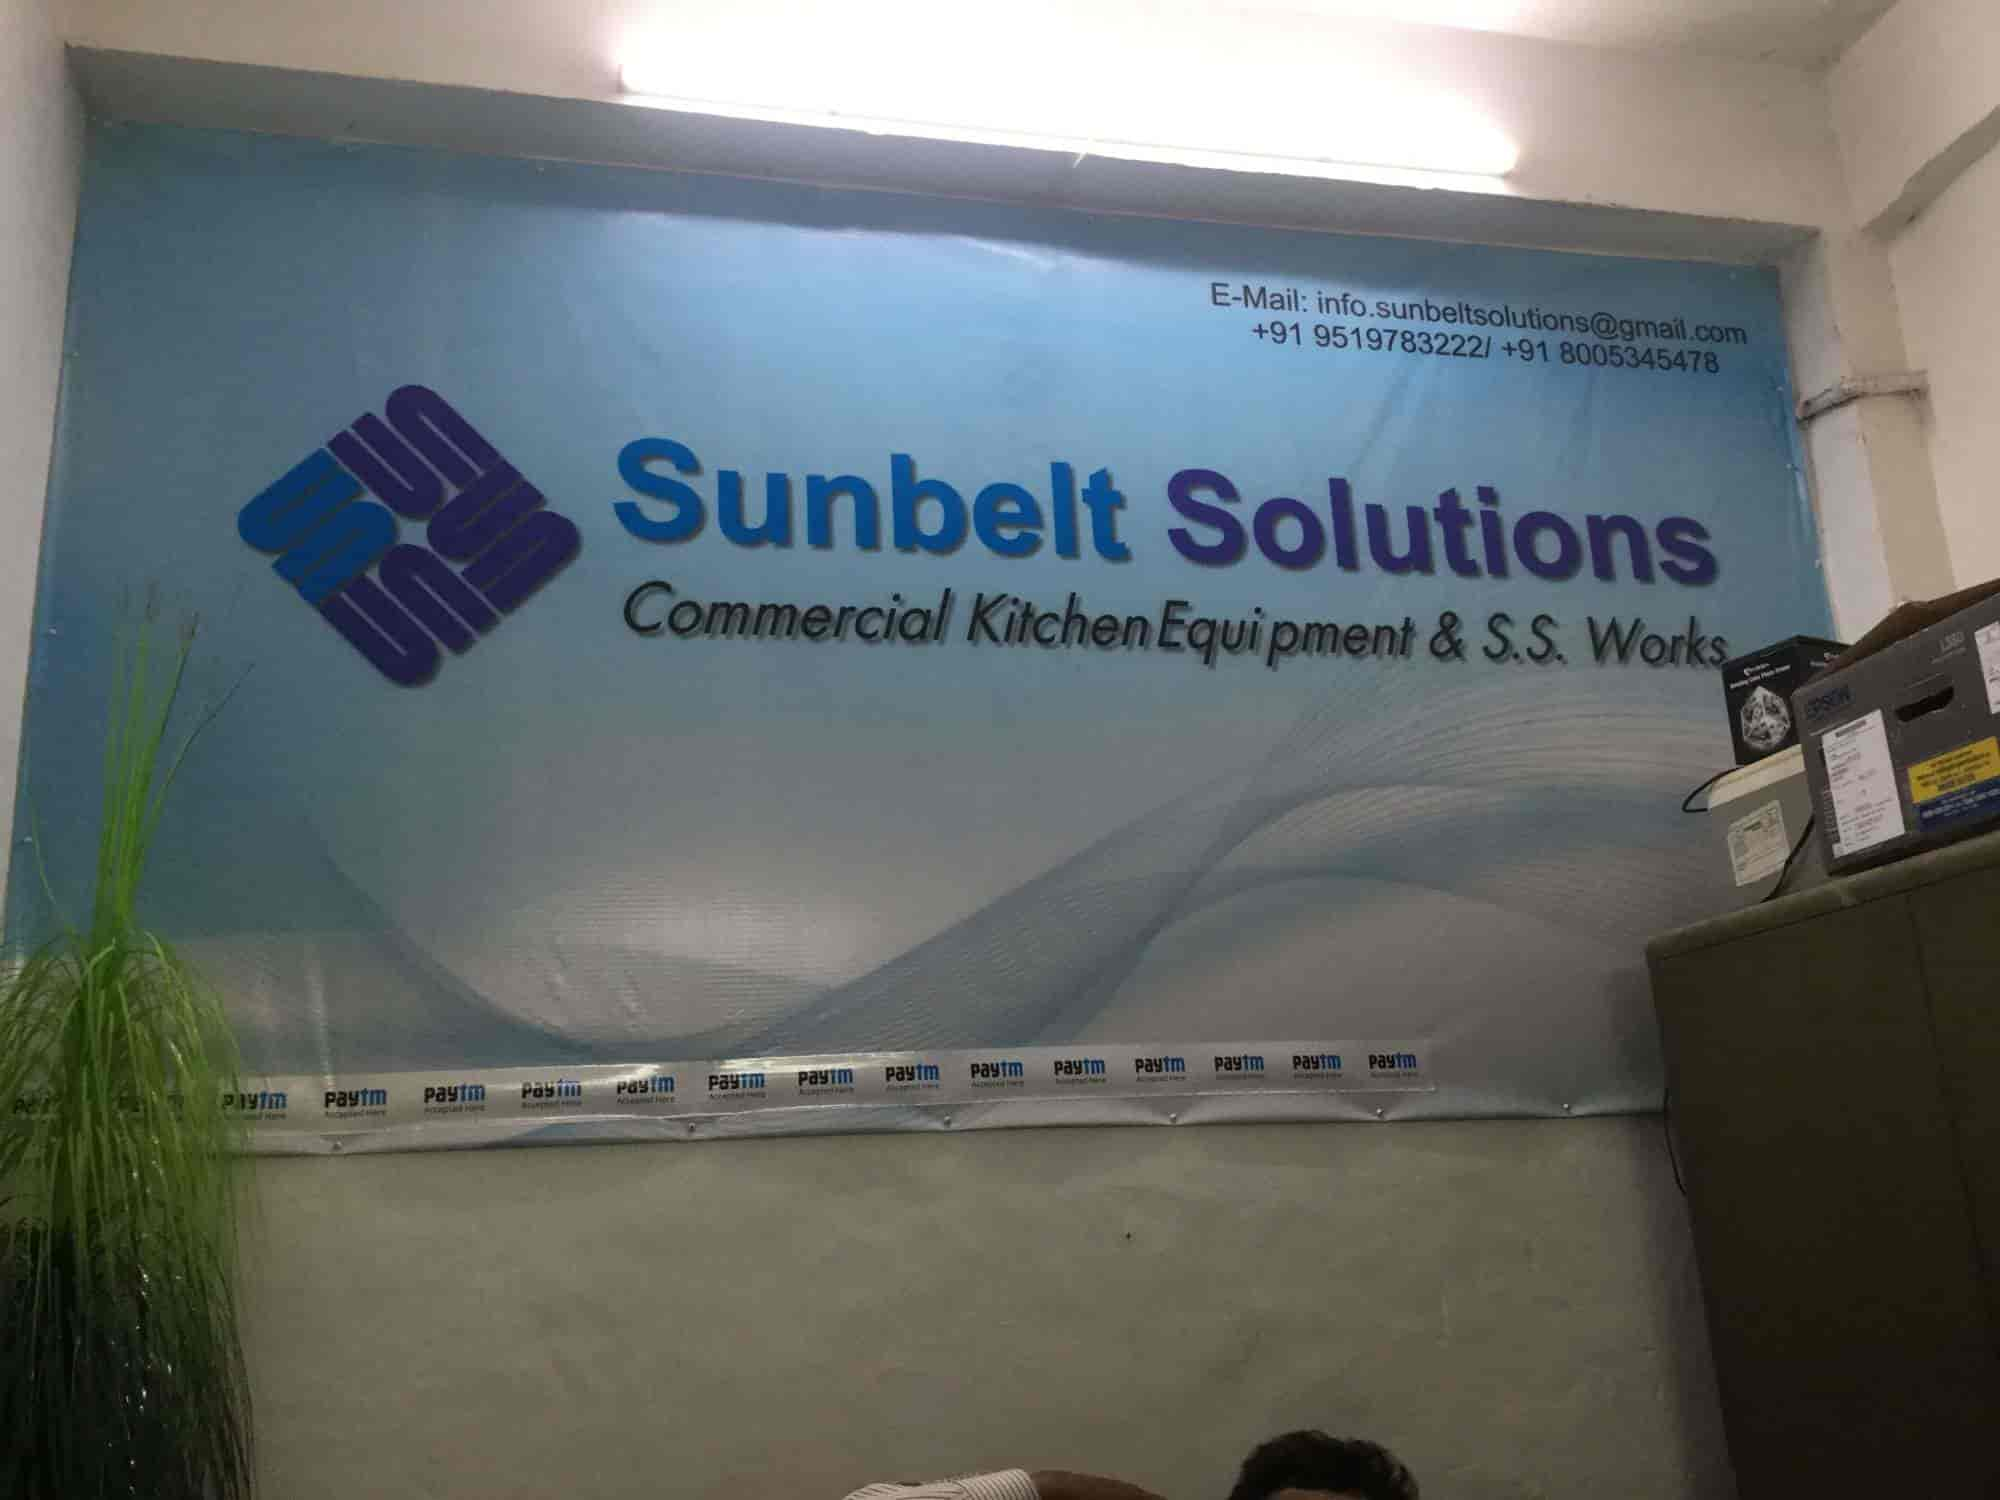 Sunbelt Solution Photos, Vikas Nagar, Lucknow- Pictures & Images ...